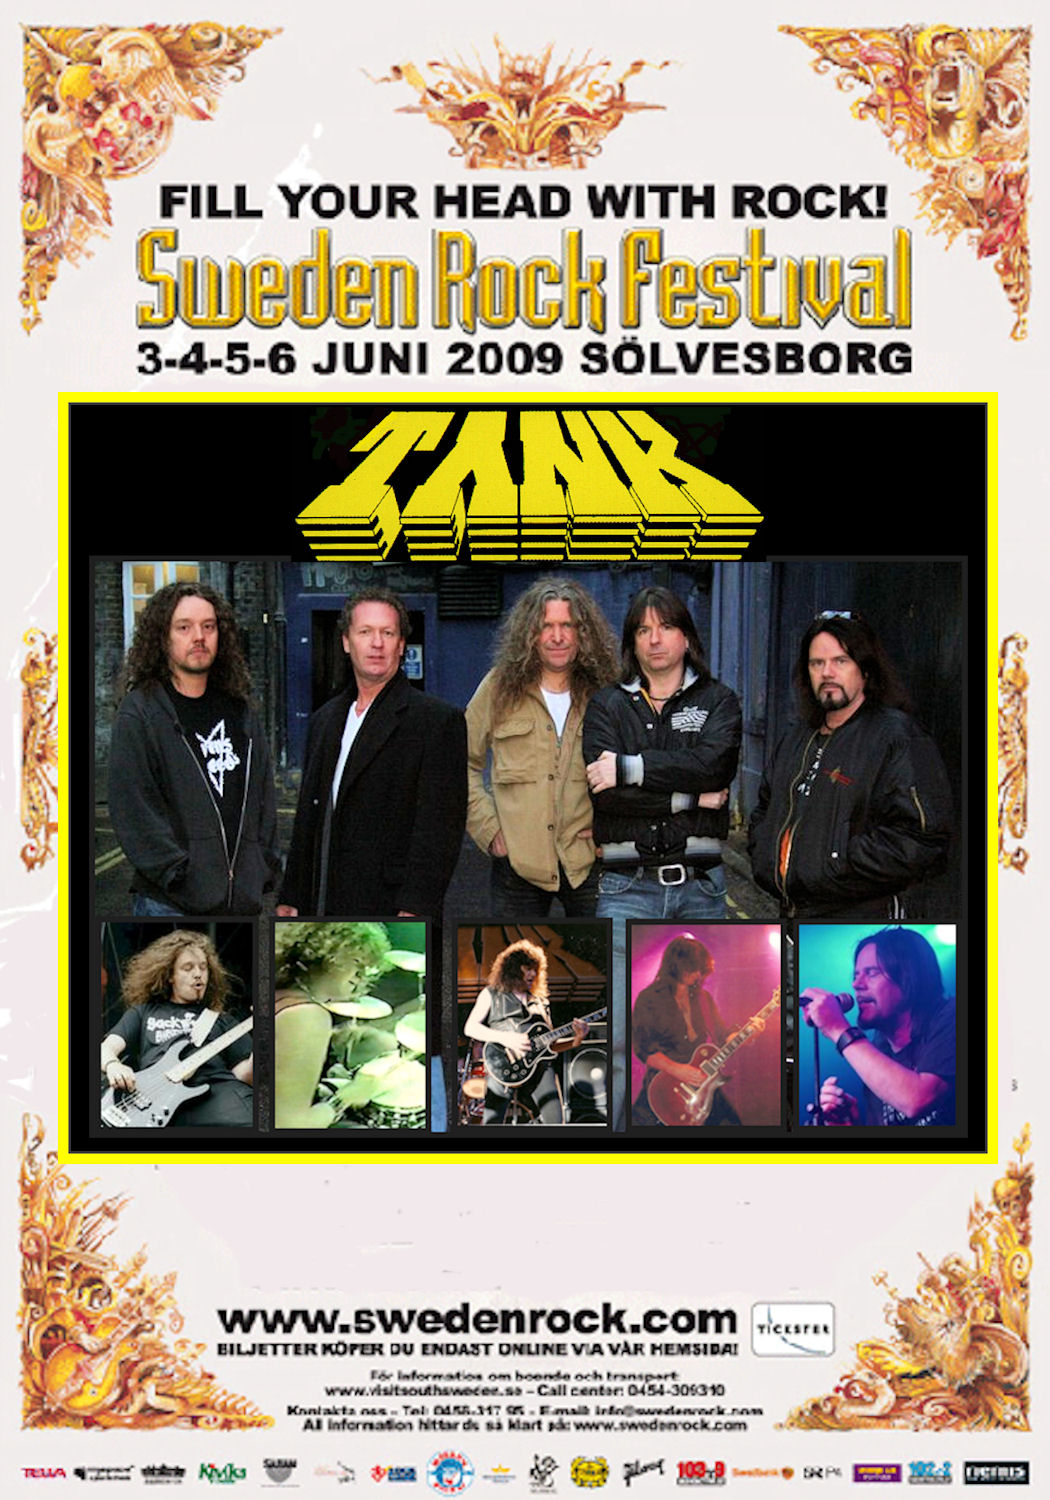 Doogie White and Tank at Sweden Rock